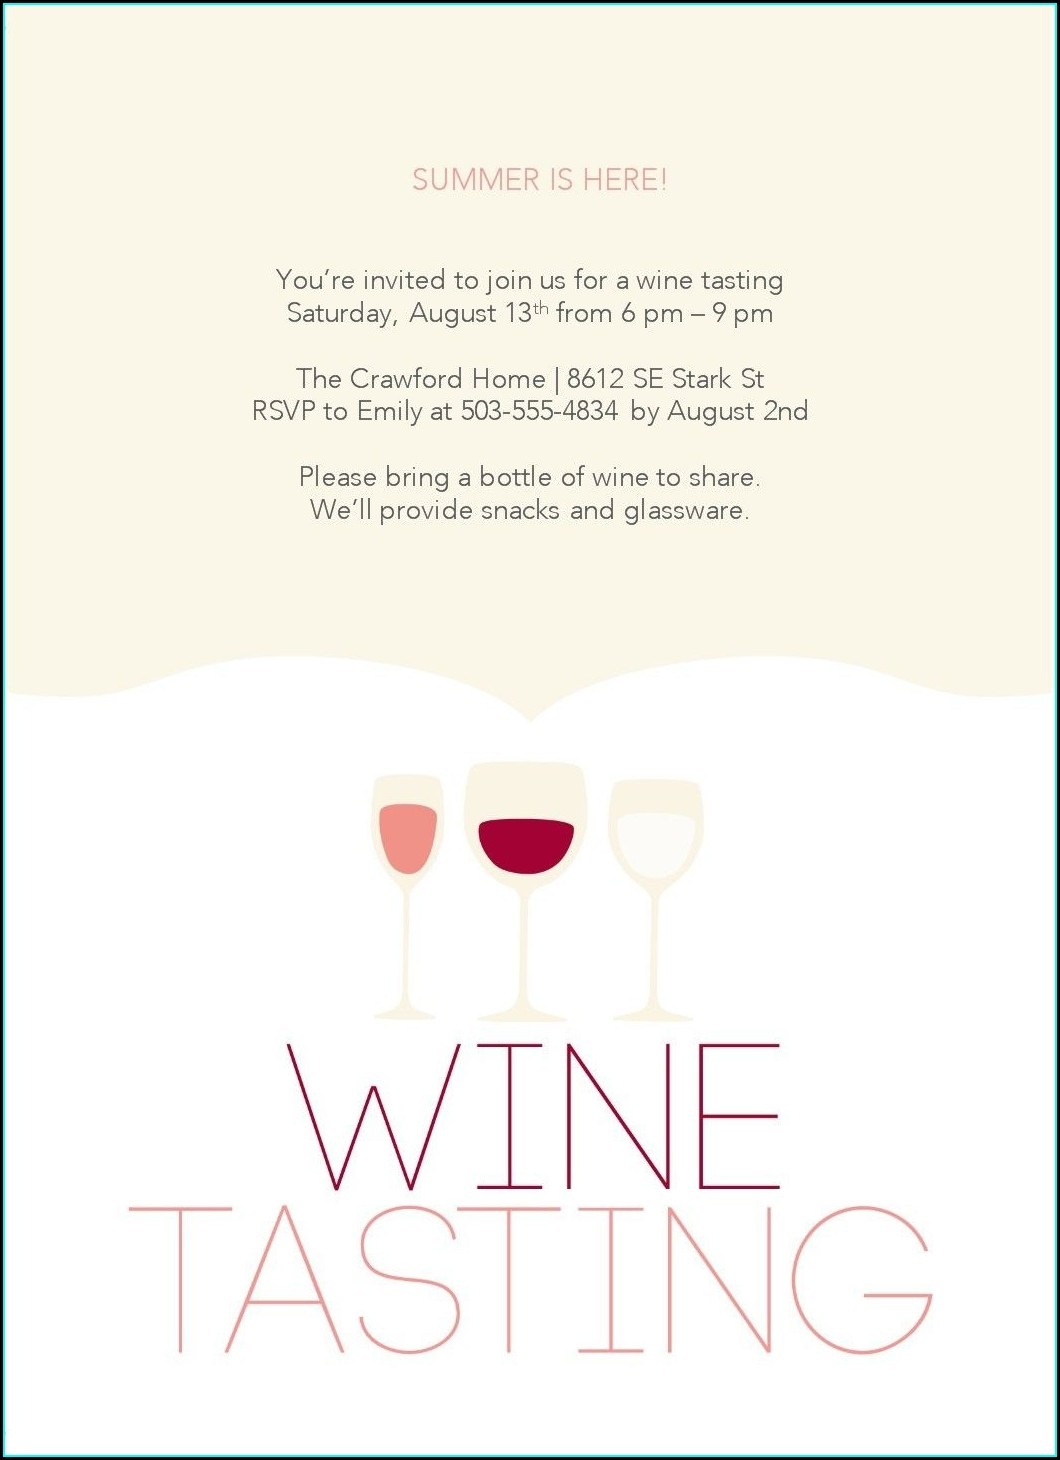 Wine Tour Invitation Templates